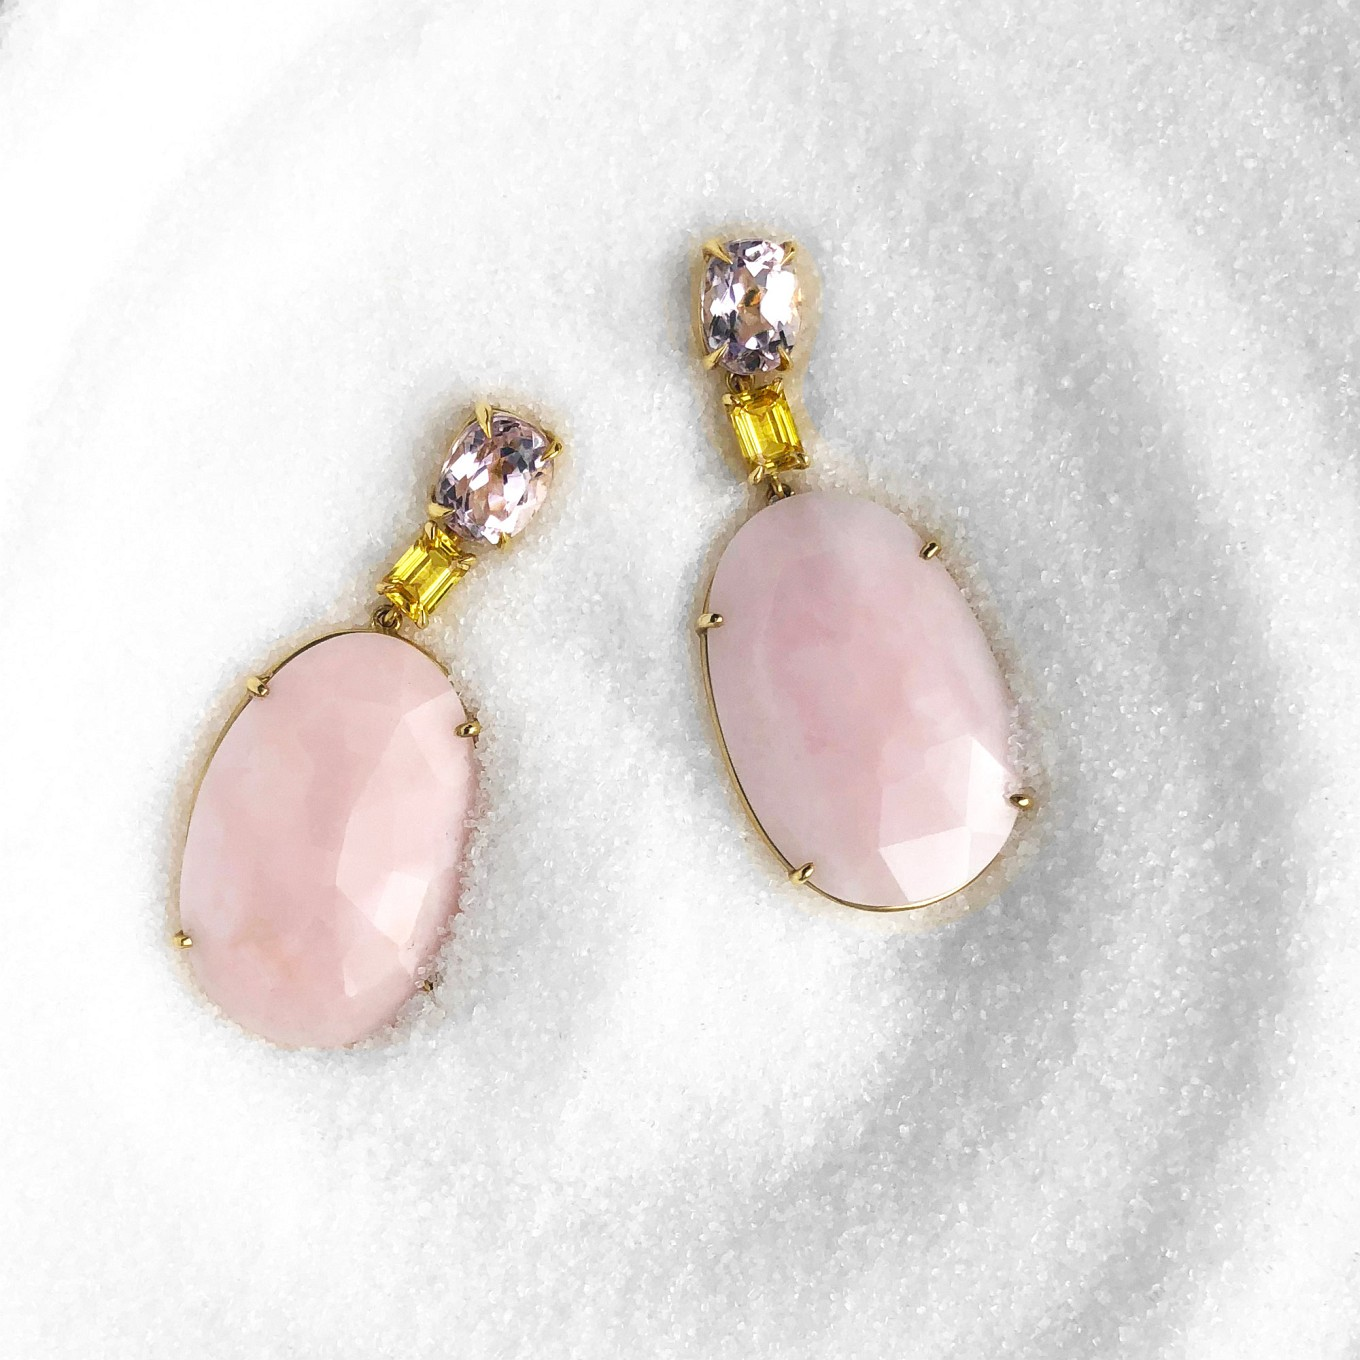 KUNZITE, YELLOW SAPPHIRE & PINK OPAL EARRINGS